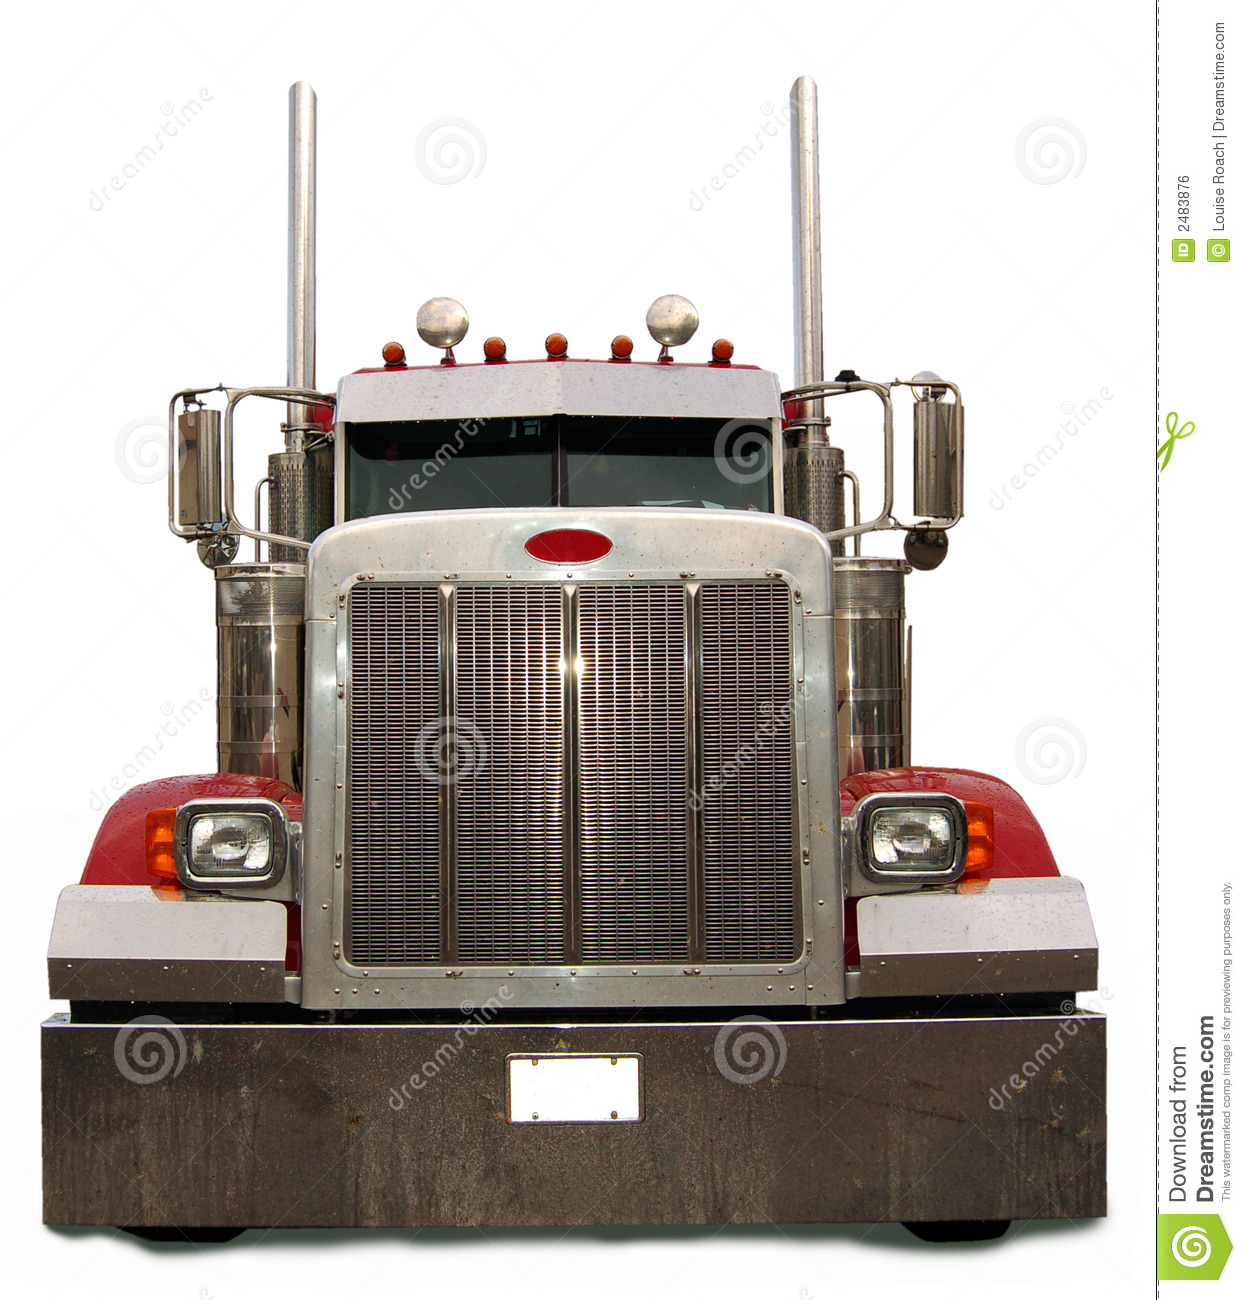 Tractor Front Grill Clip Art : Truck fire engine coloring page free image